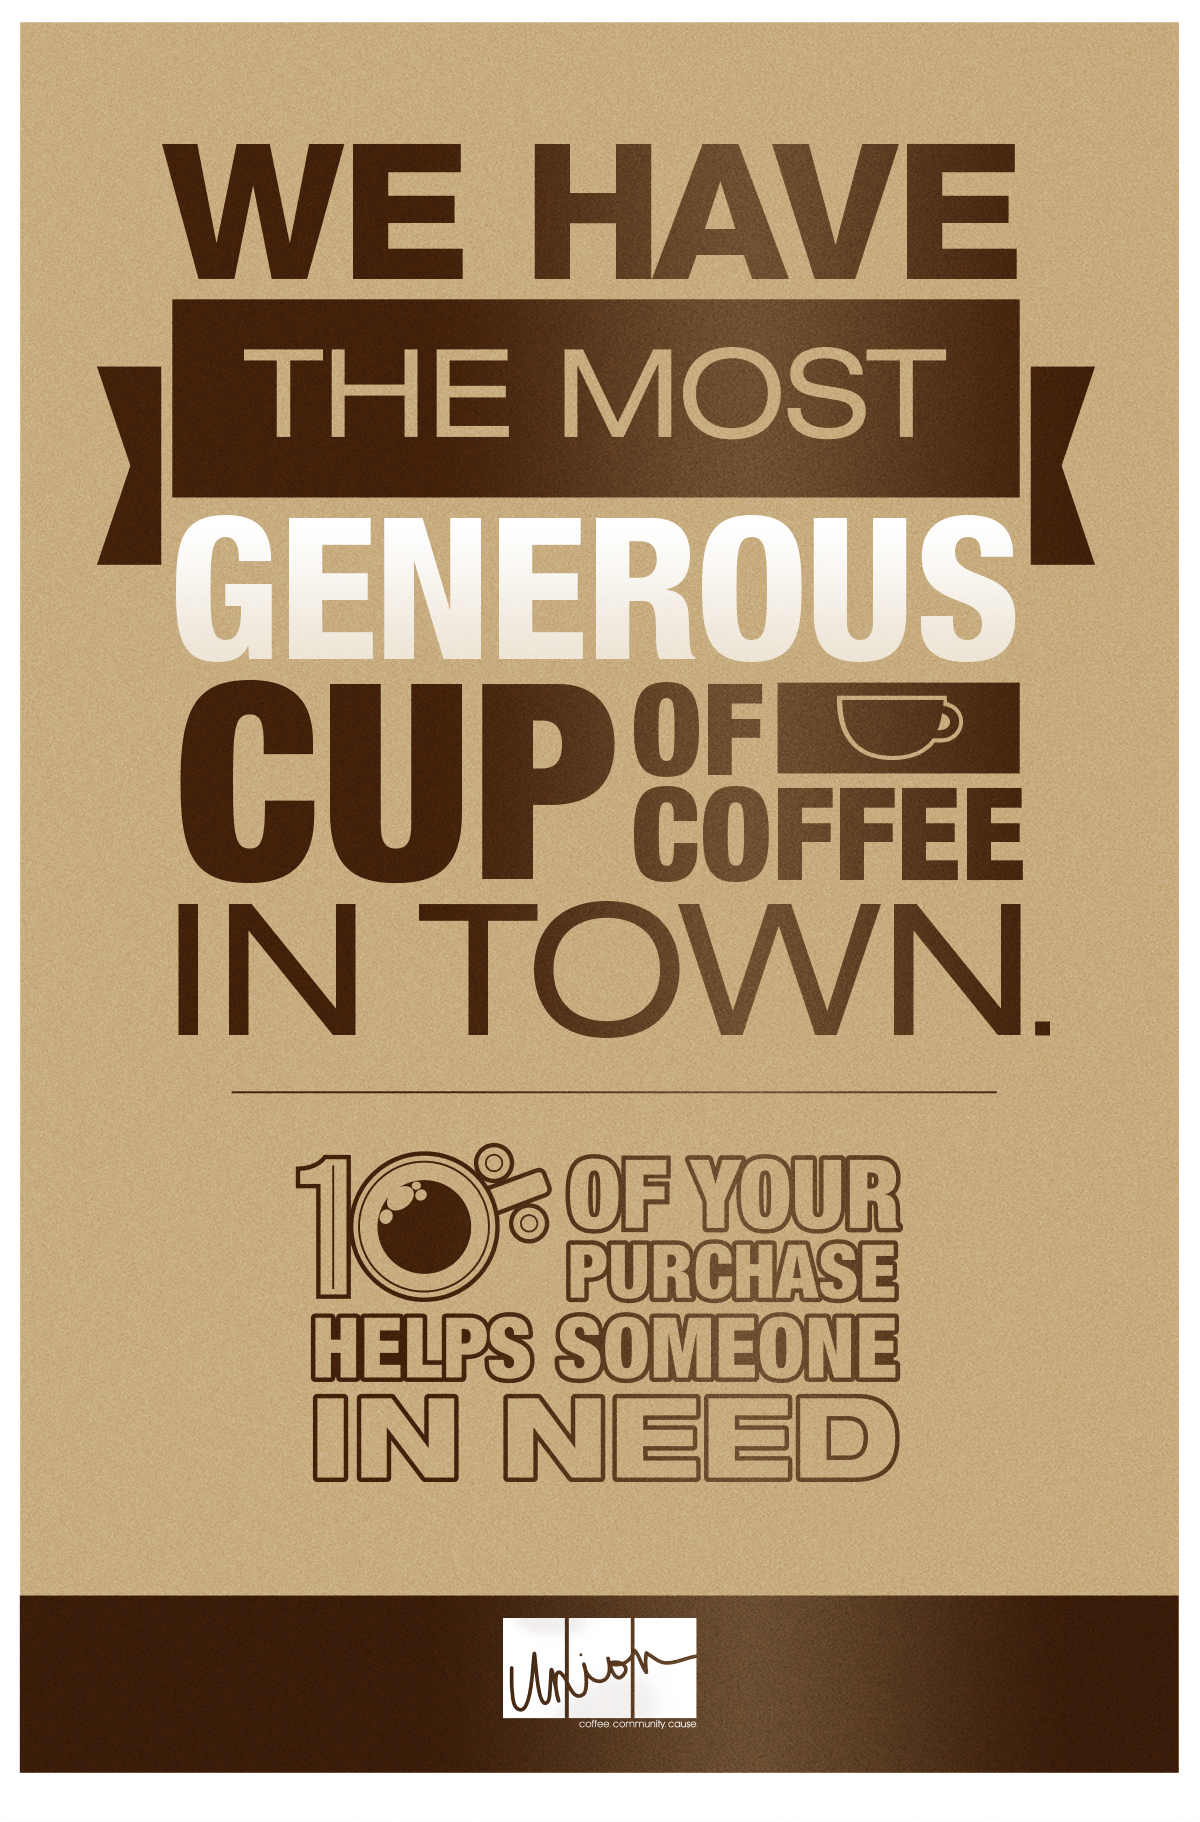 Union Coffee Poster for Child Literacy - Generous Cup by Tidal Wave Marketing